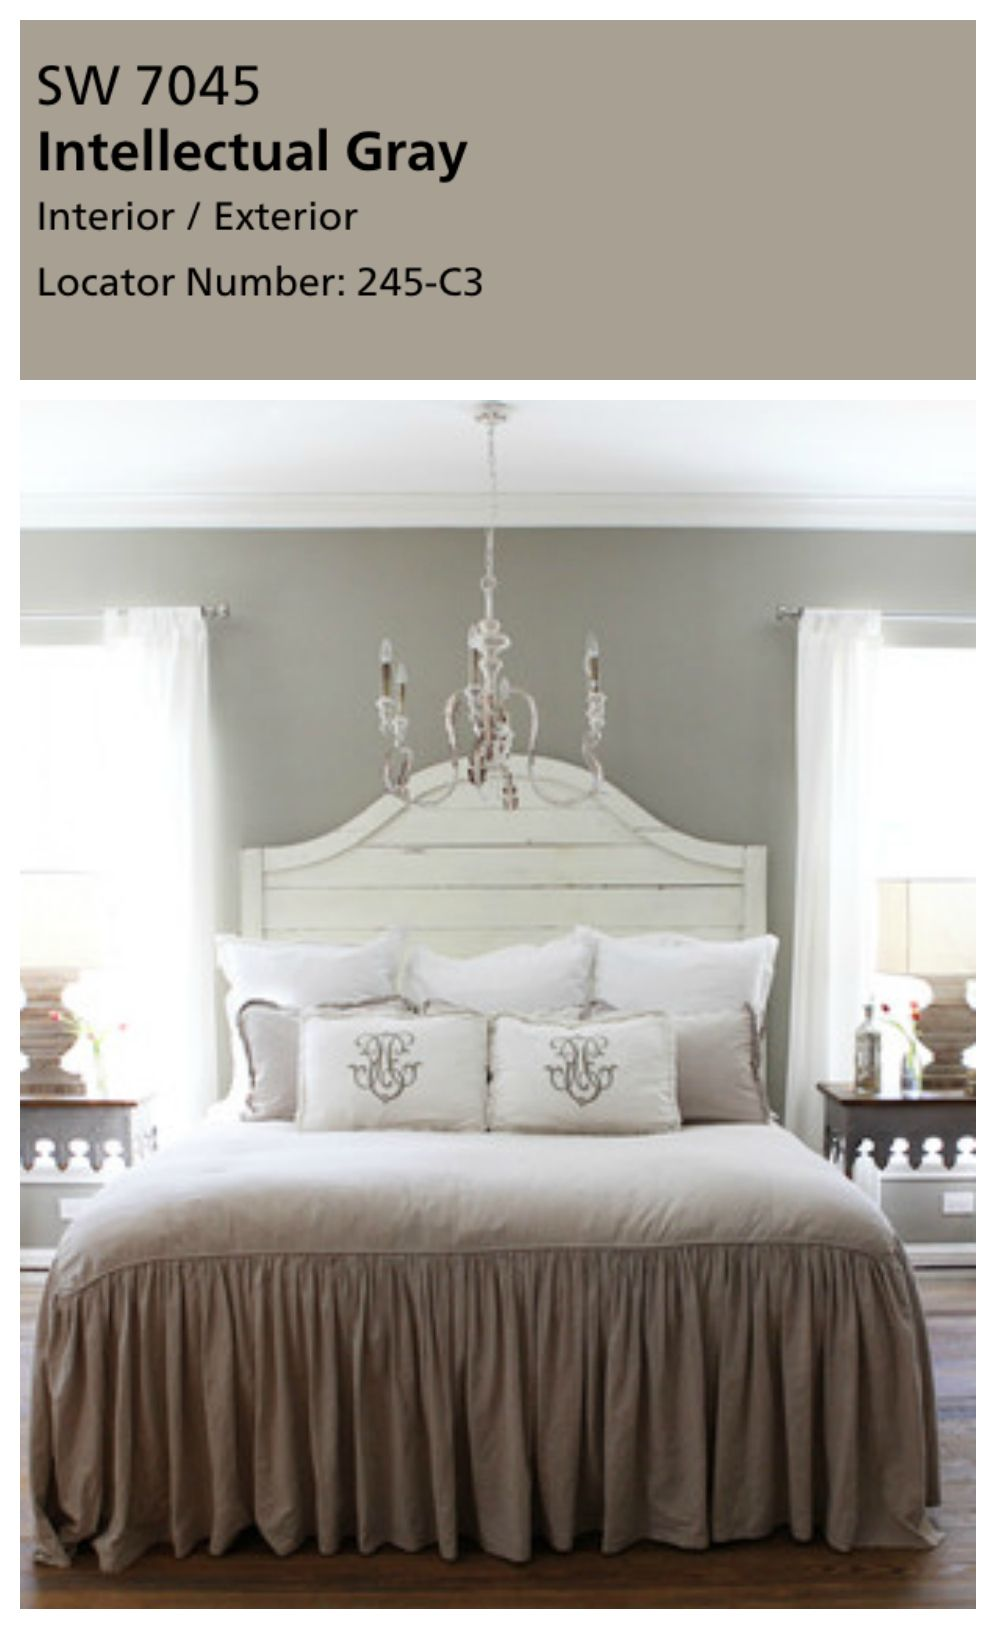 The Most Popular Farmhouse Paint Colors Of 2020 Decor Steals Blog Paint Colors For Home Farmhouse Paint Farmhouse Paint Colors